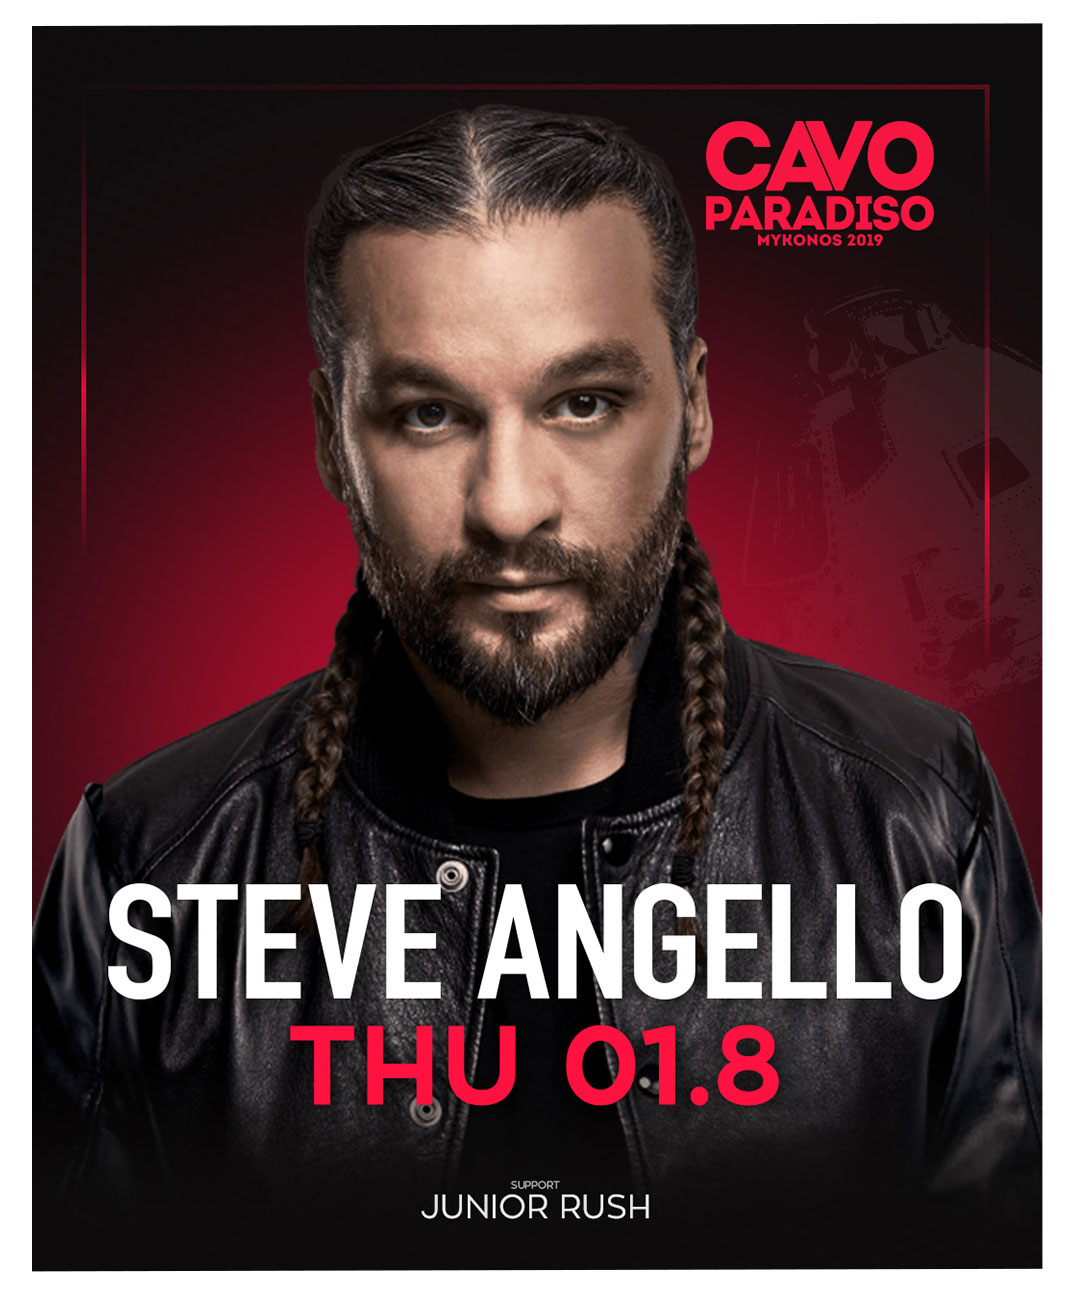 Steve Angello w/ support by Junior Rush